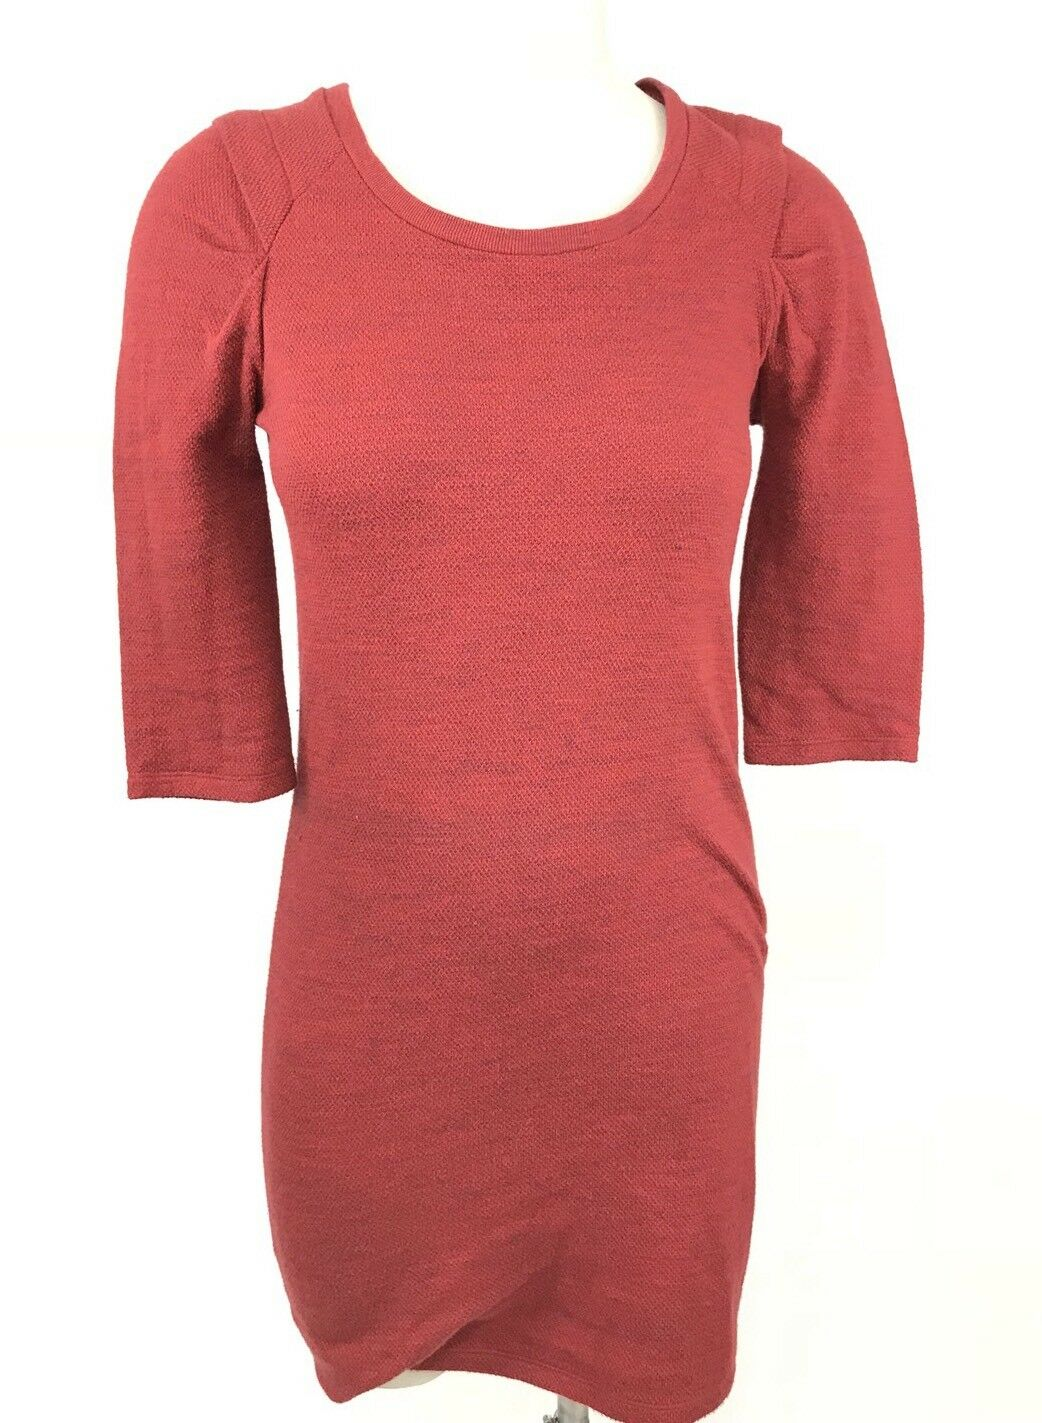 Iro Sweater Dress Größe 1 Cassie Tunic rot Exposed Zipper Pleated Shoulder Knit